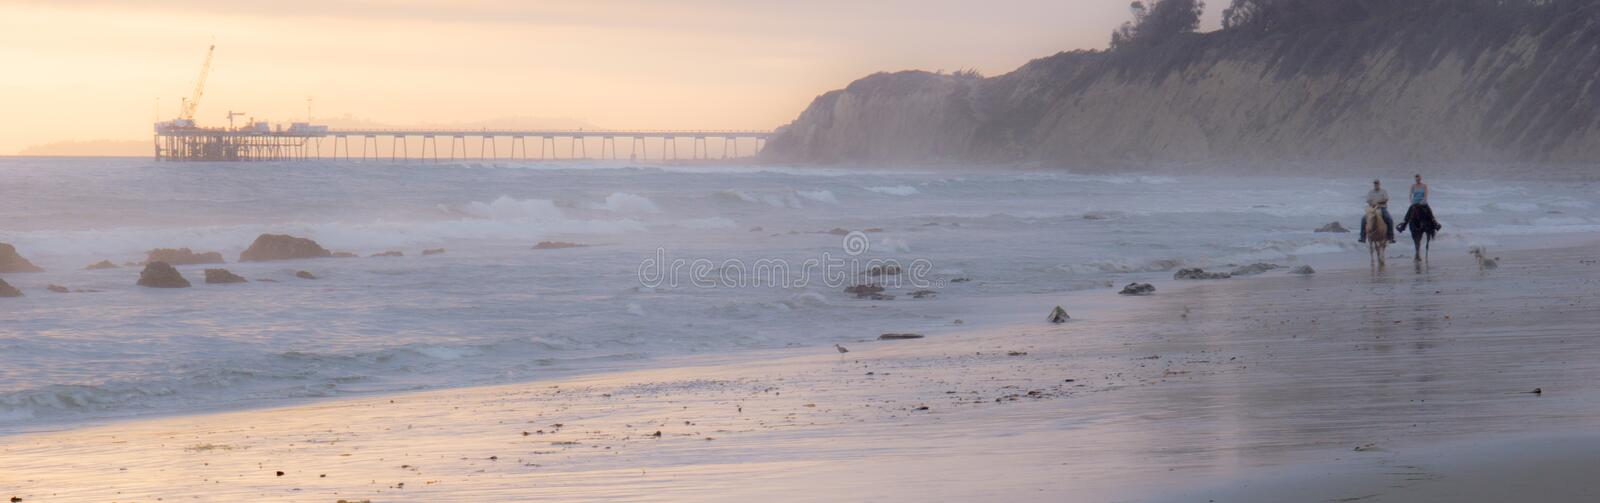 Two Horse Riders on Beach royalty free stock photos